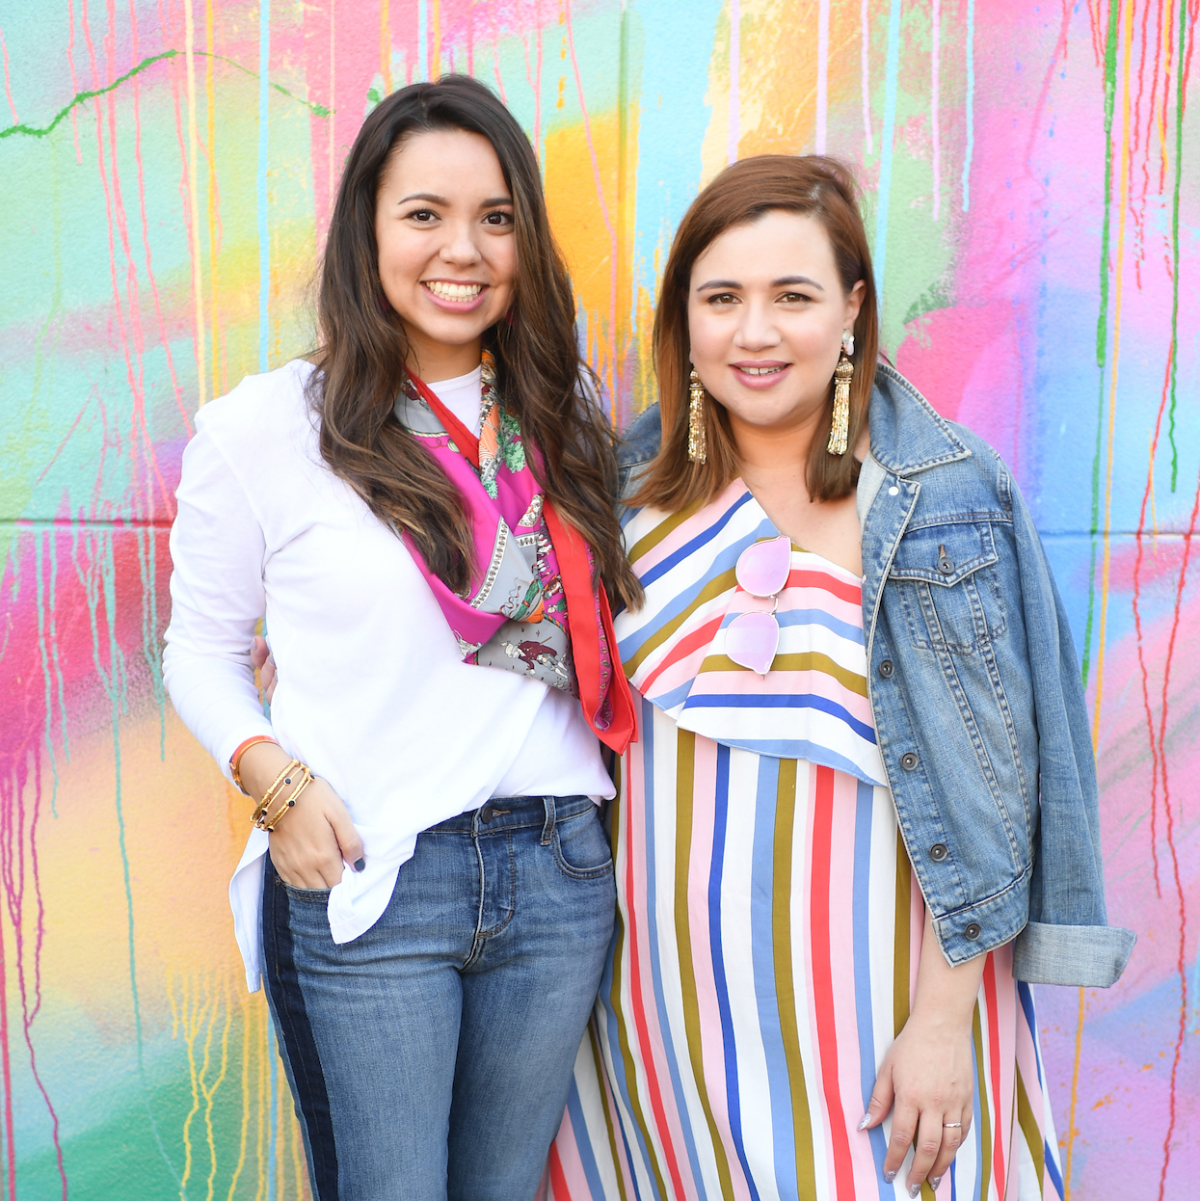 Alexandria Haines, Nicole Kestenbaum at More Color Please launch